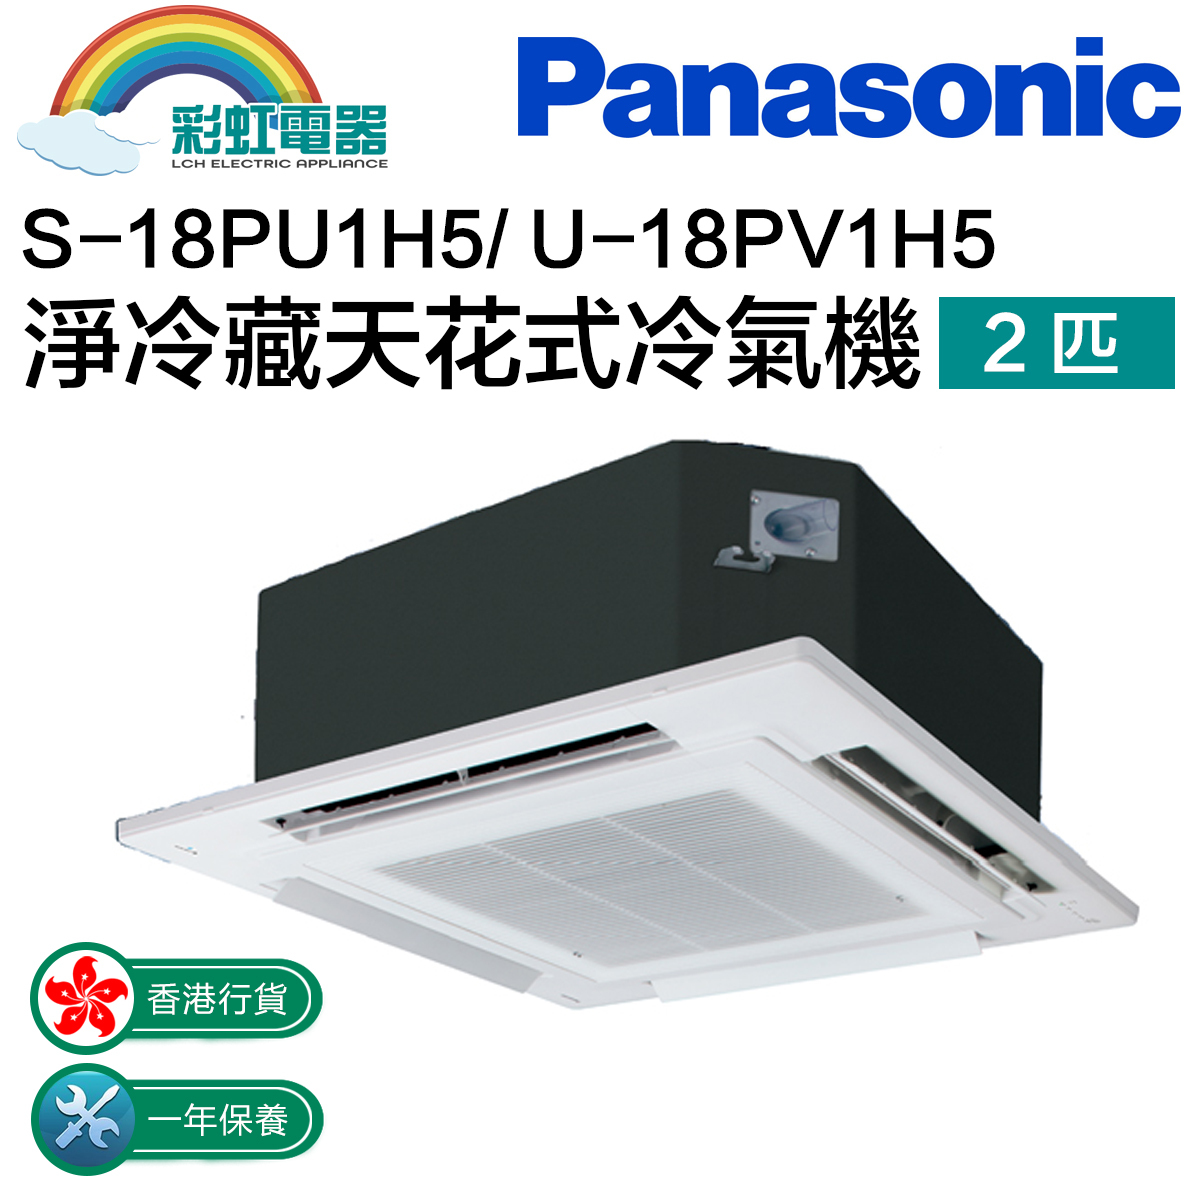 S-18pu1h5 / u-18pv1h5 net refrigerating day fancy air conditioner 2 pieces